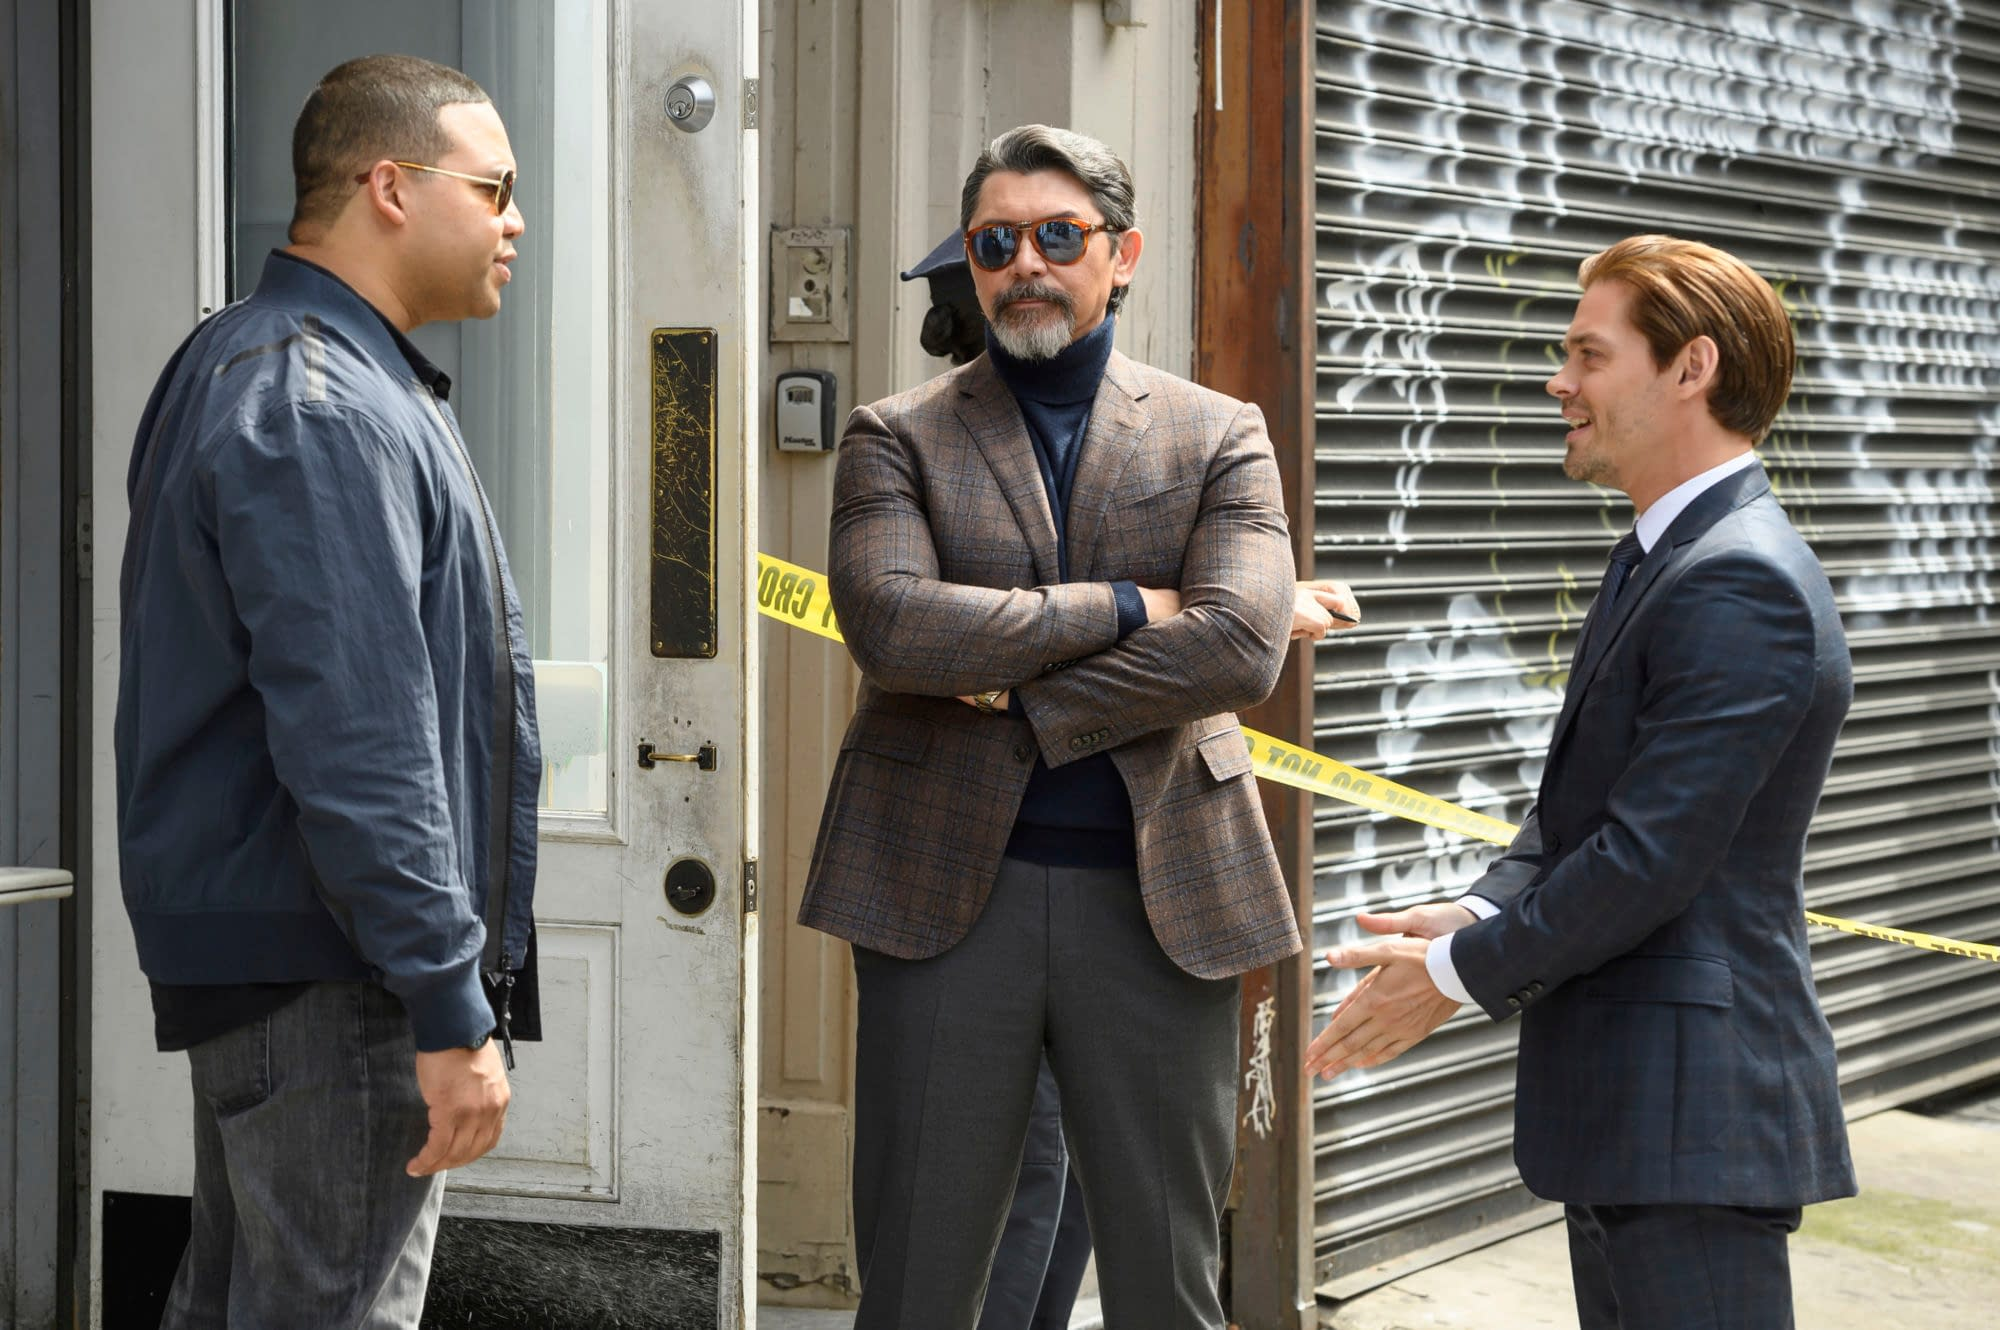 """Prodigal Son"" Season 1: Can Bright Find His Way Back From ""The Trip""? [PREVIEW]"